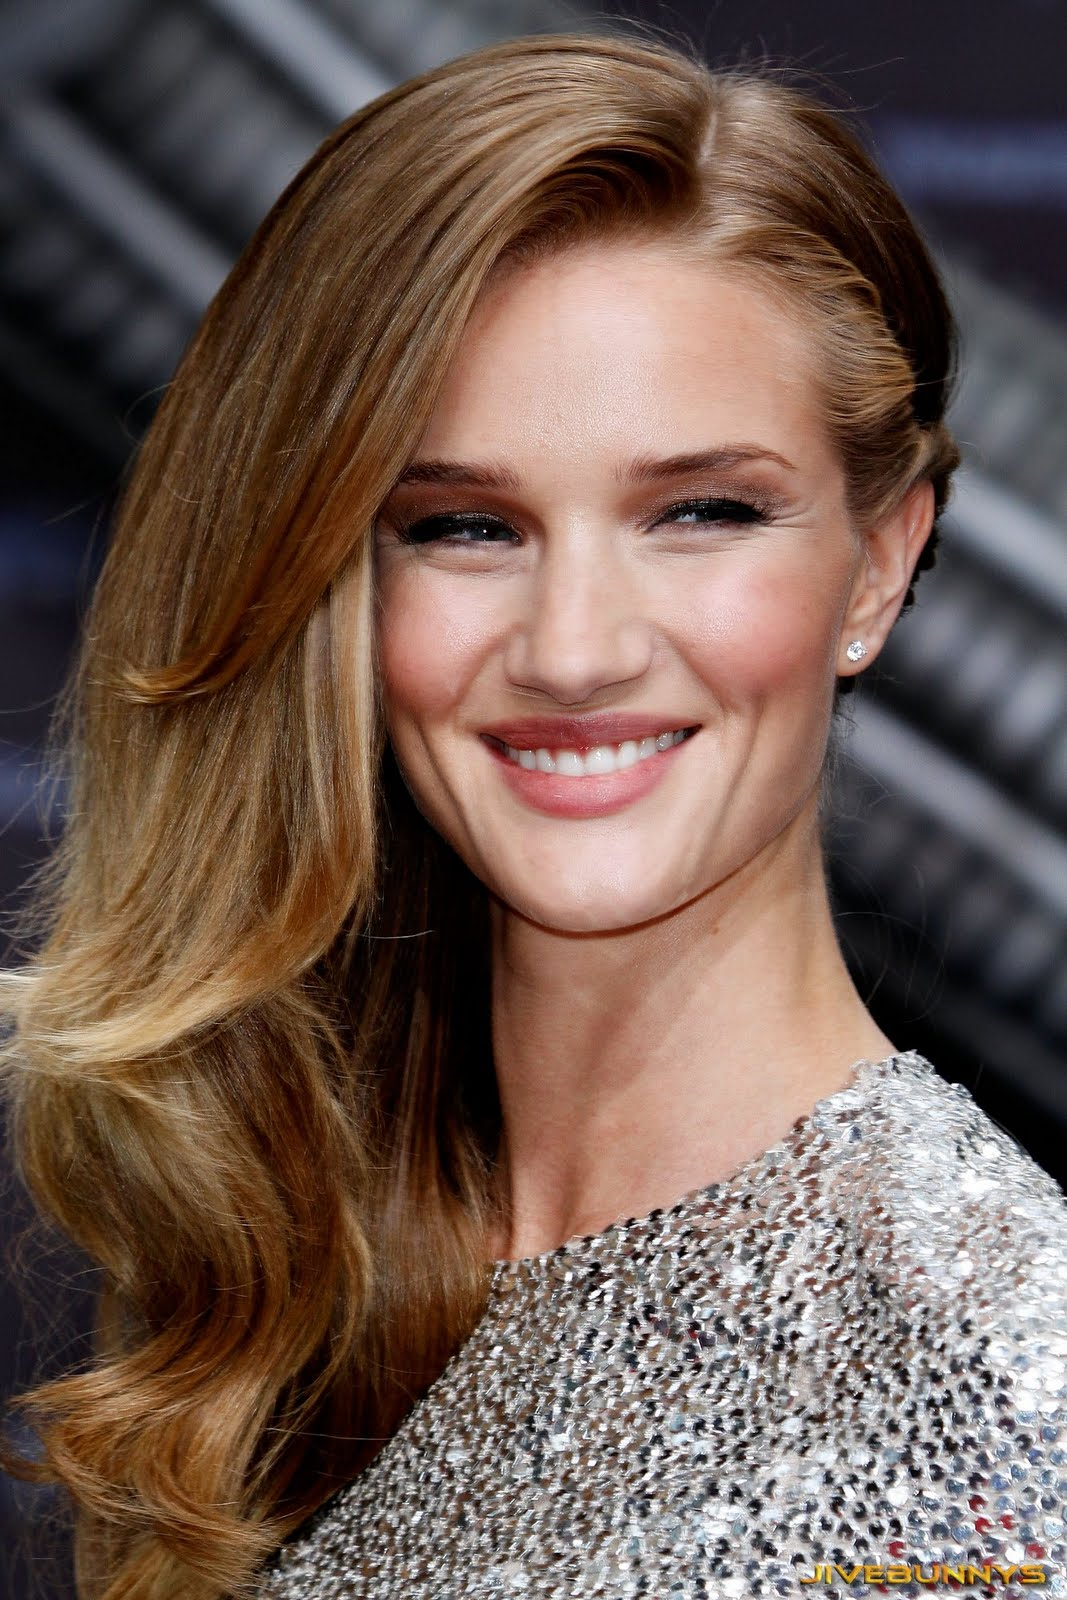 Rosie Huntington-Whiteley Special Pictures (10)